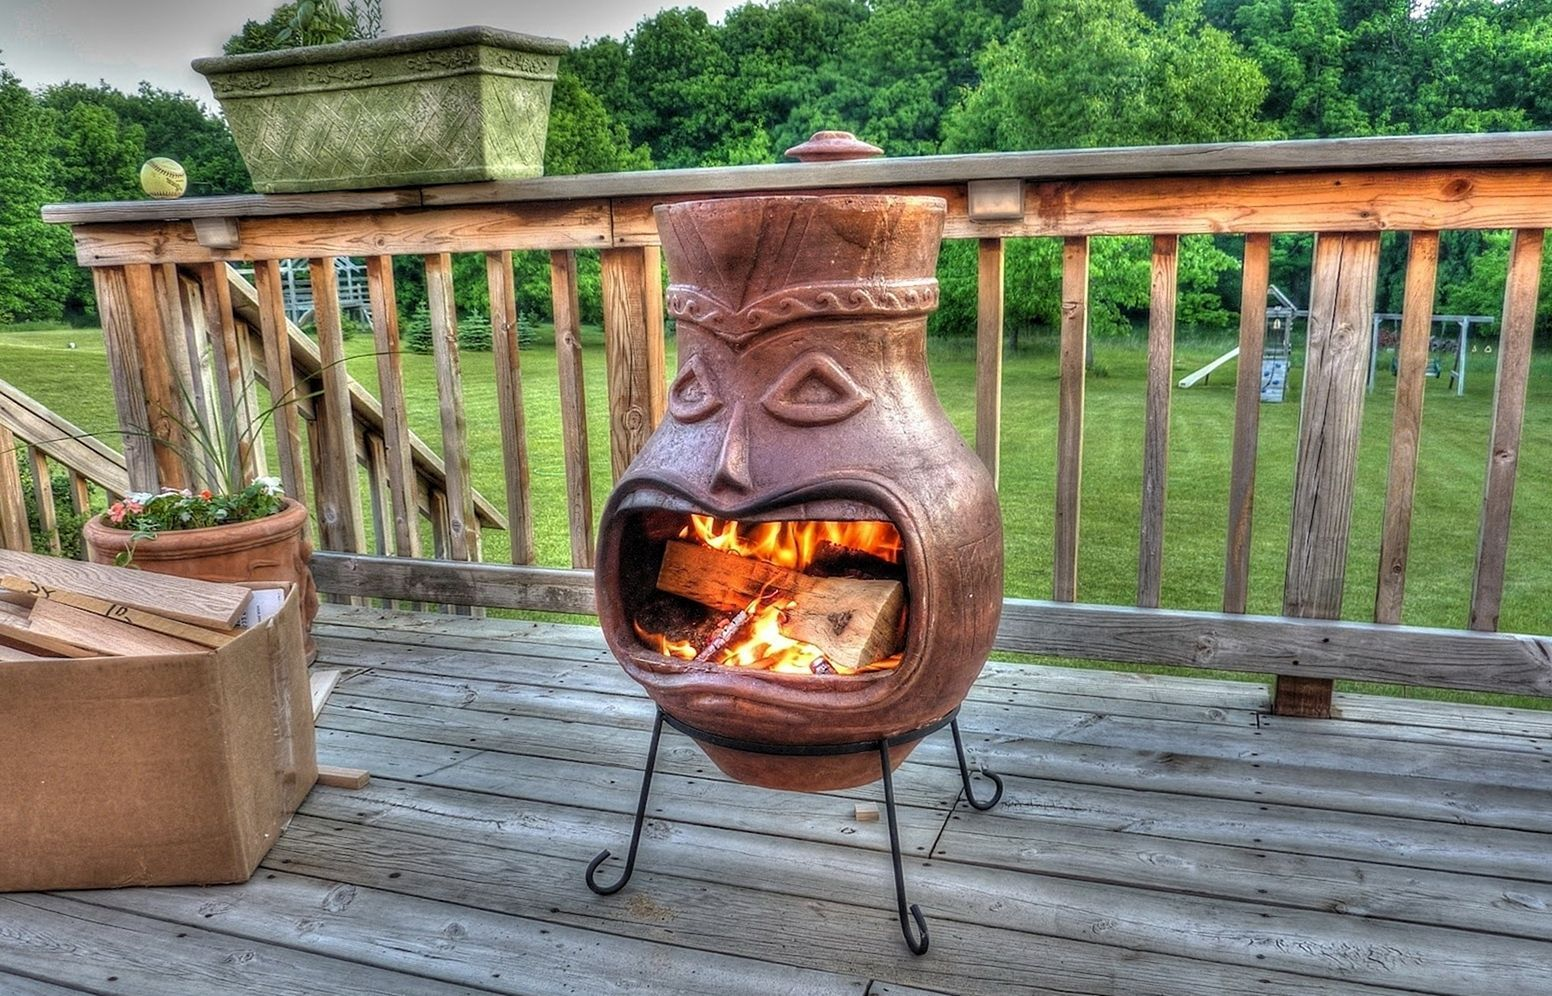 20 Diy Fireplace Design Ideas For Home Outdoor Decoration On A Budget Dexorate Chiminea Fire Pit Outdoor Fireplace Designs Outdoor Fire Pit